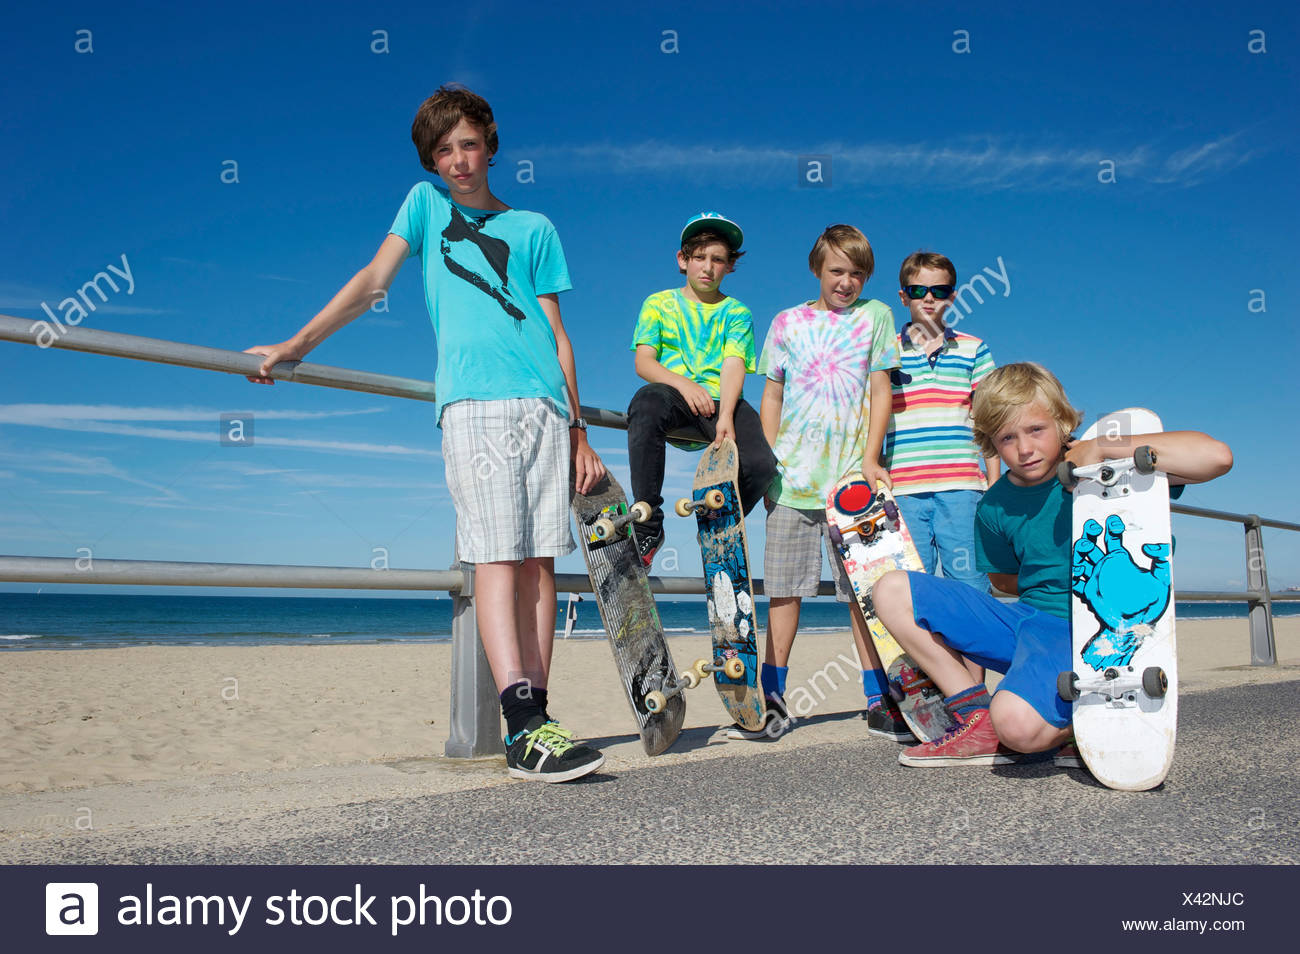 Portrait of five boys with skateboards at coast - Stock Image